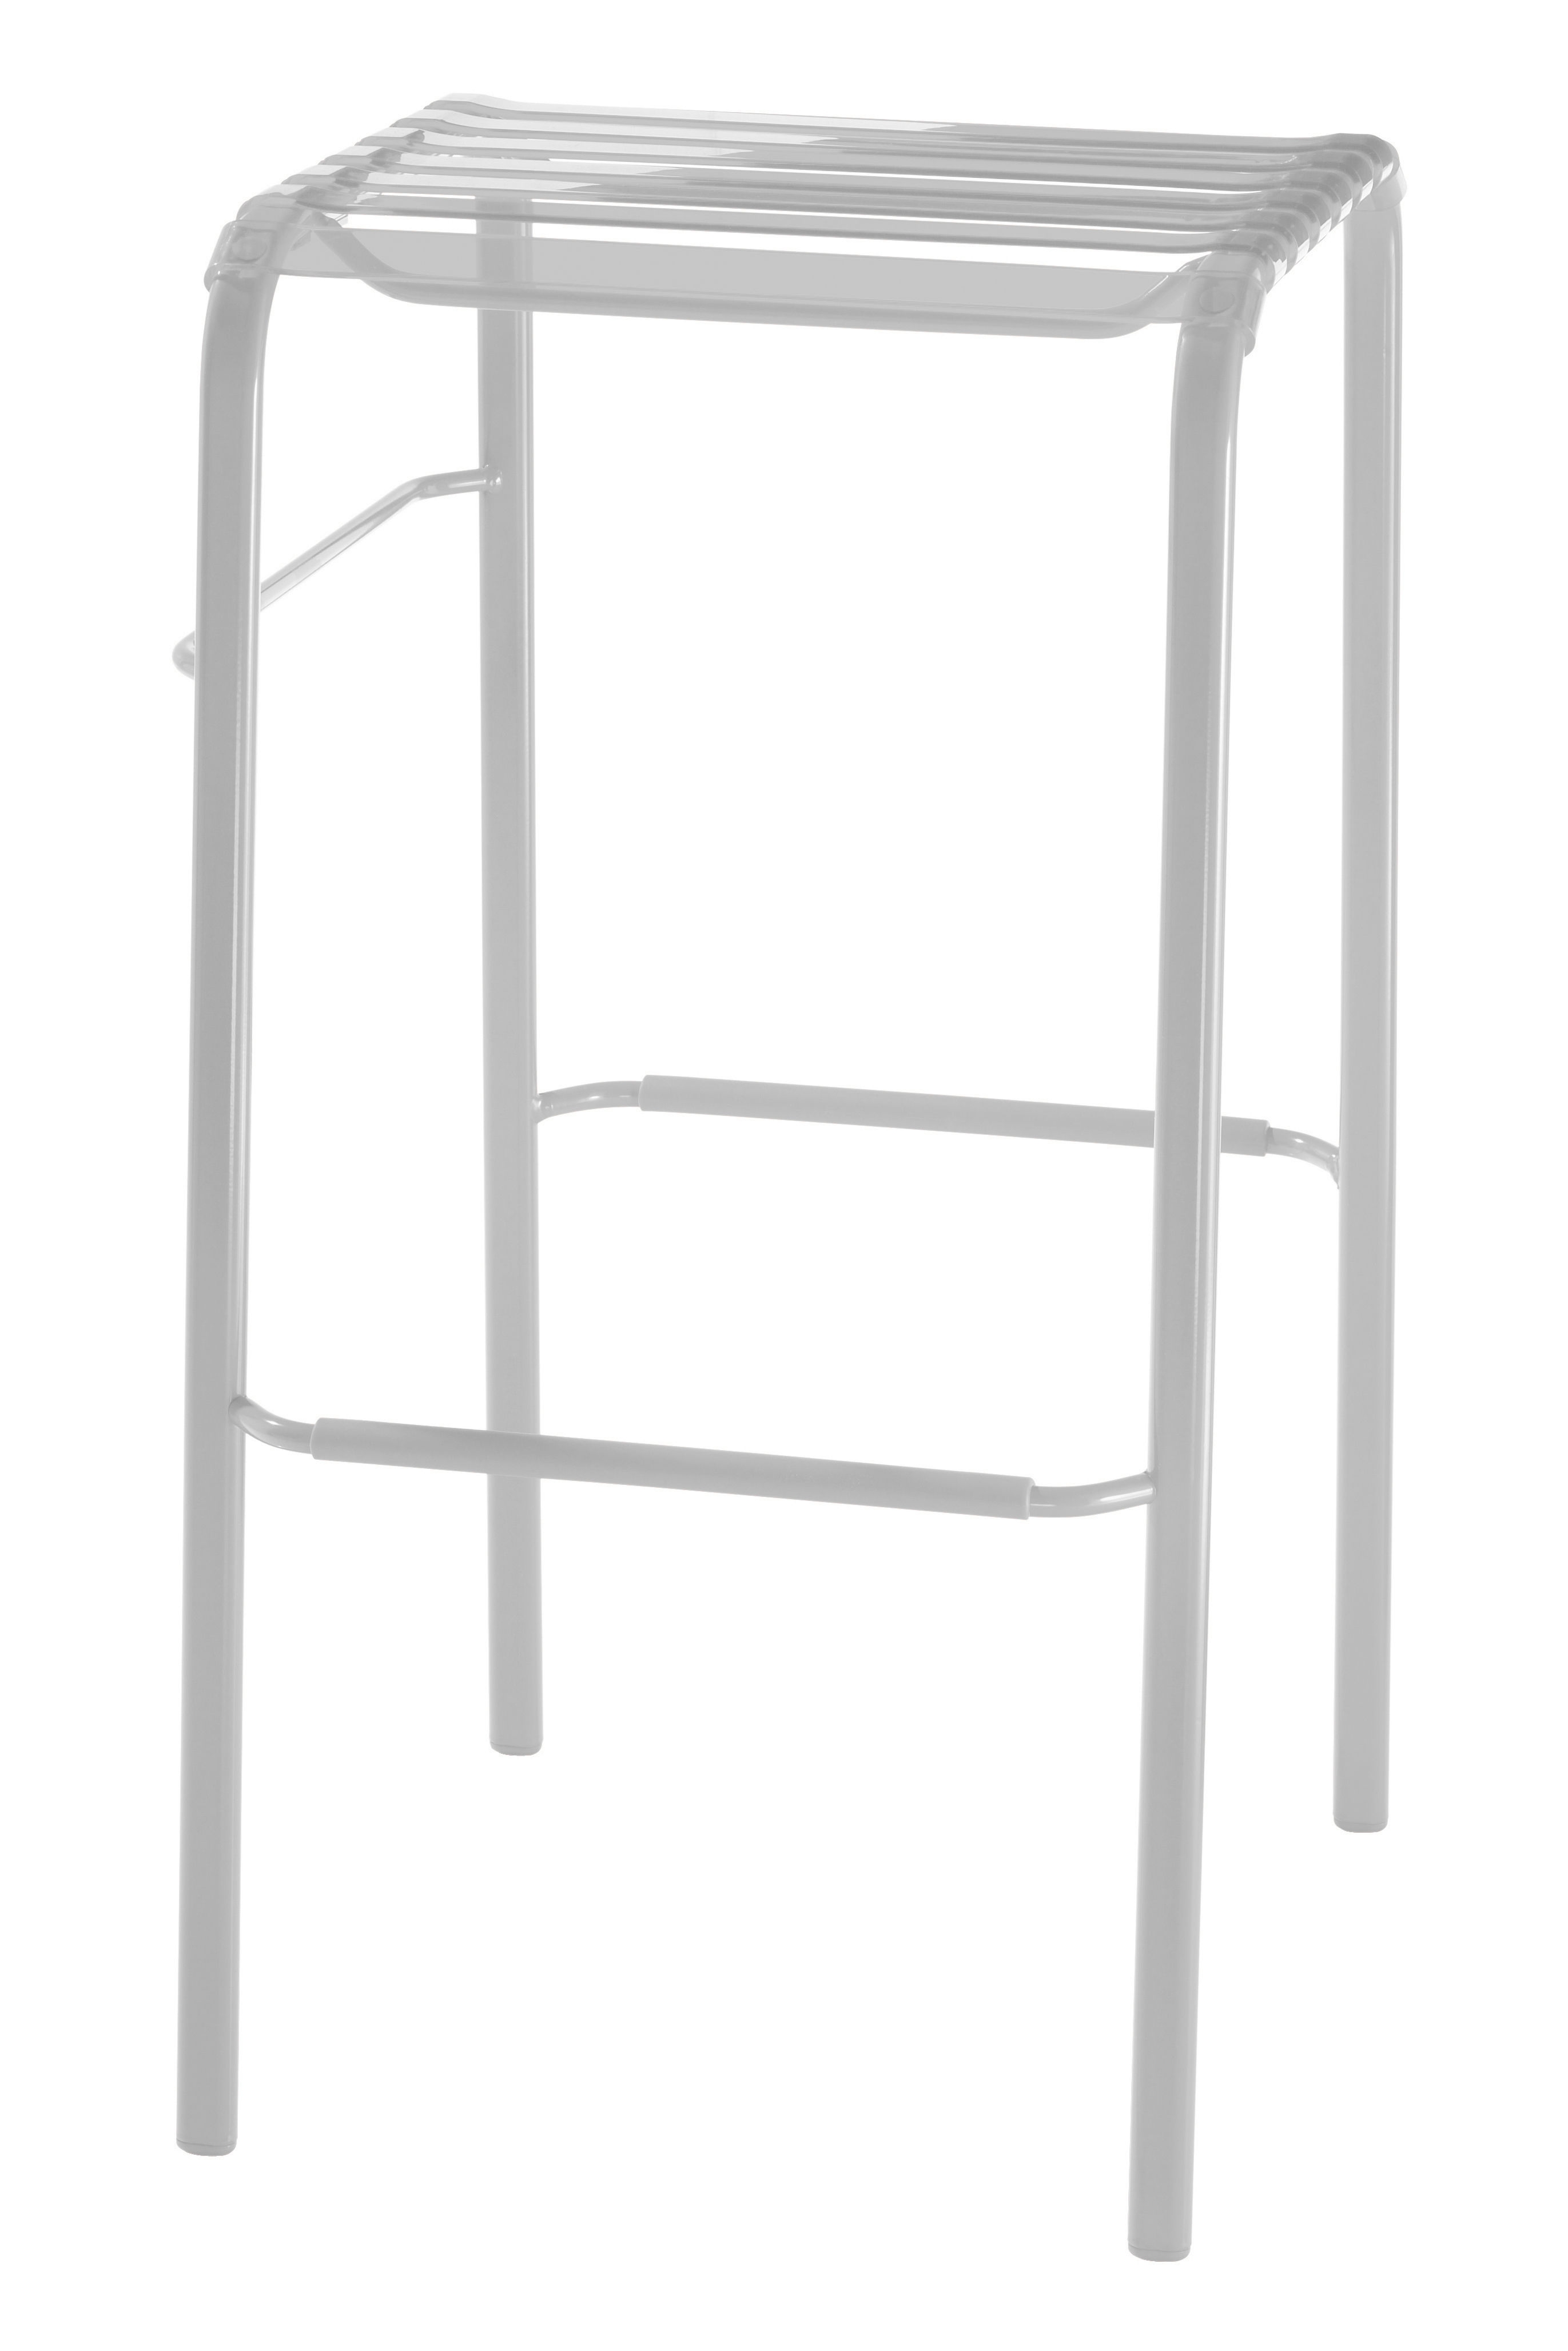 tabouret de bar striped h 68 cm assise plastique blanc h 68 cm magis. Black Bedroom Furniture Sets. Home Design Ideas